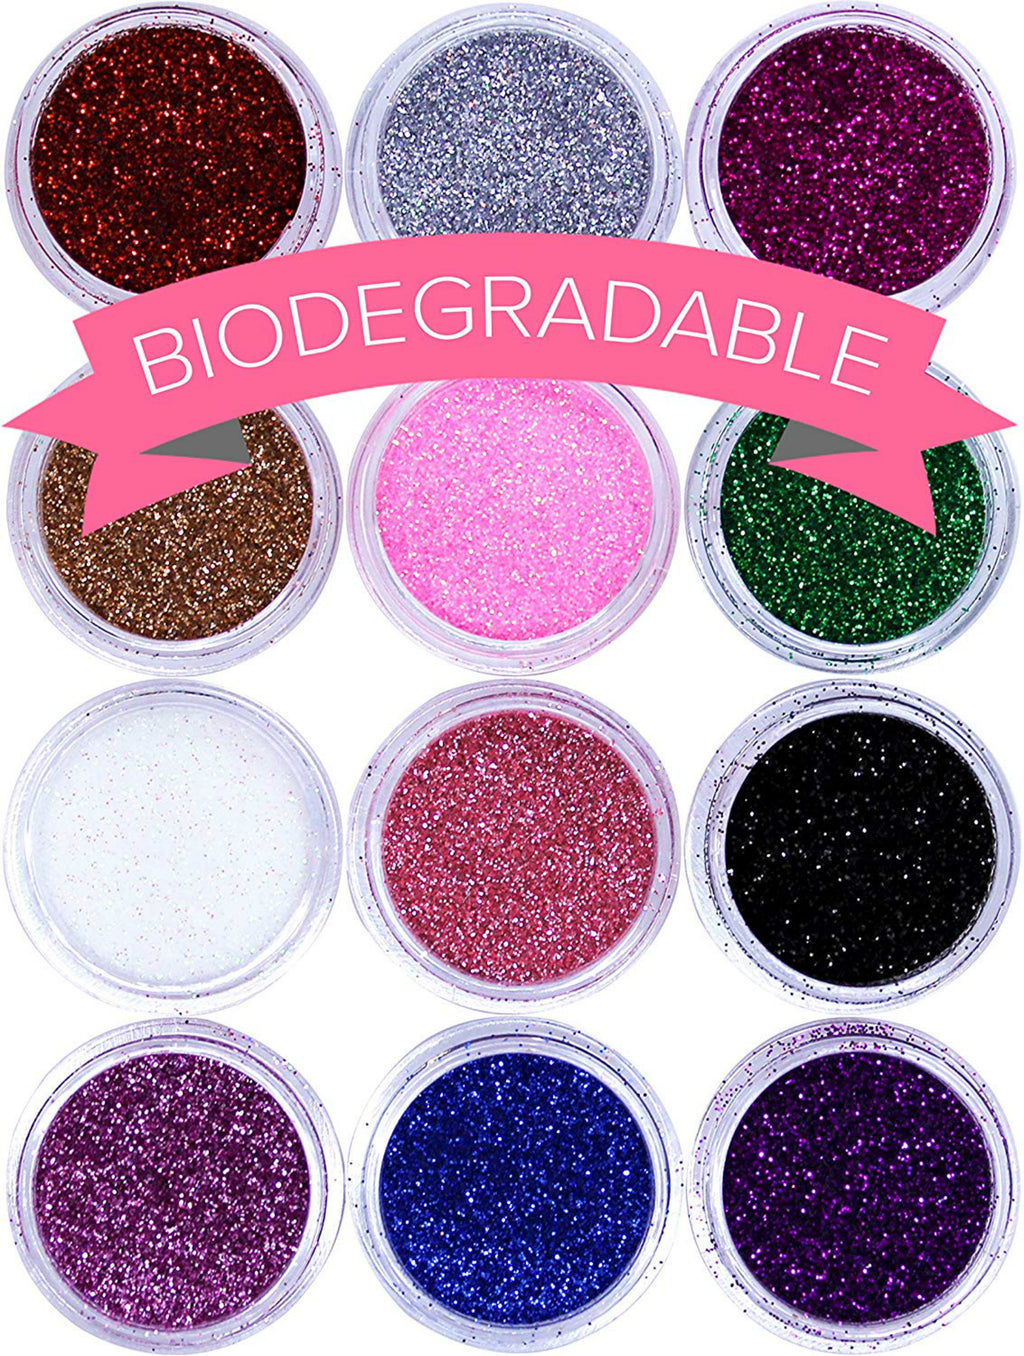 BIODEGRADABLE Glitter for Gel Nail Art Pots Set ULTRA FINE DUST POWDER